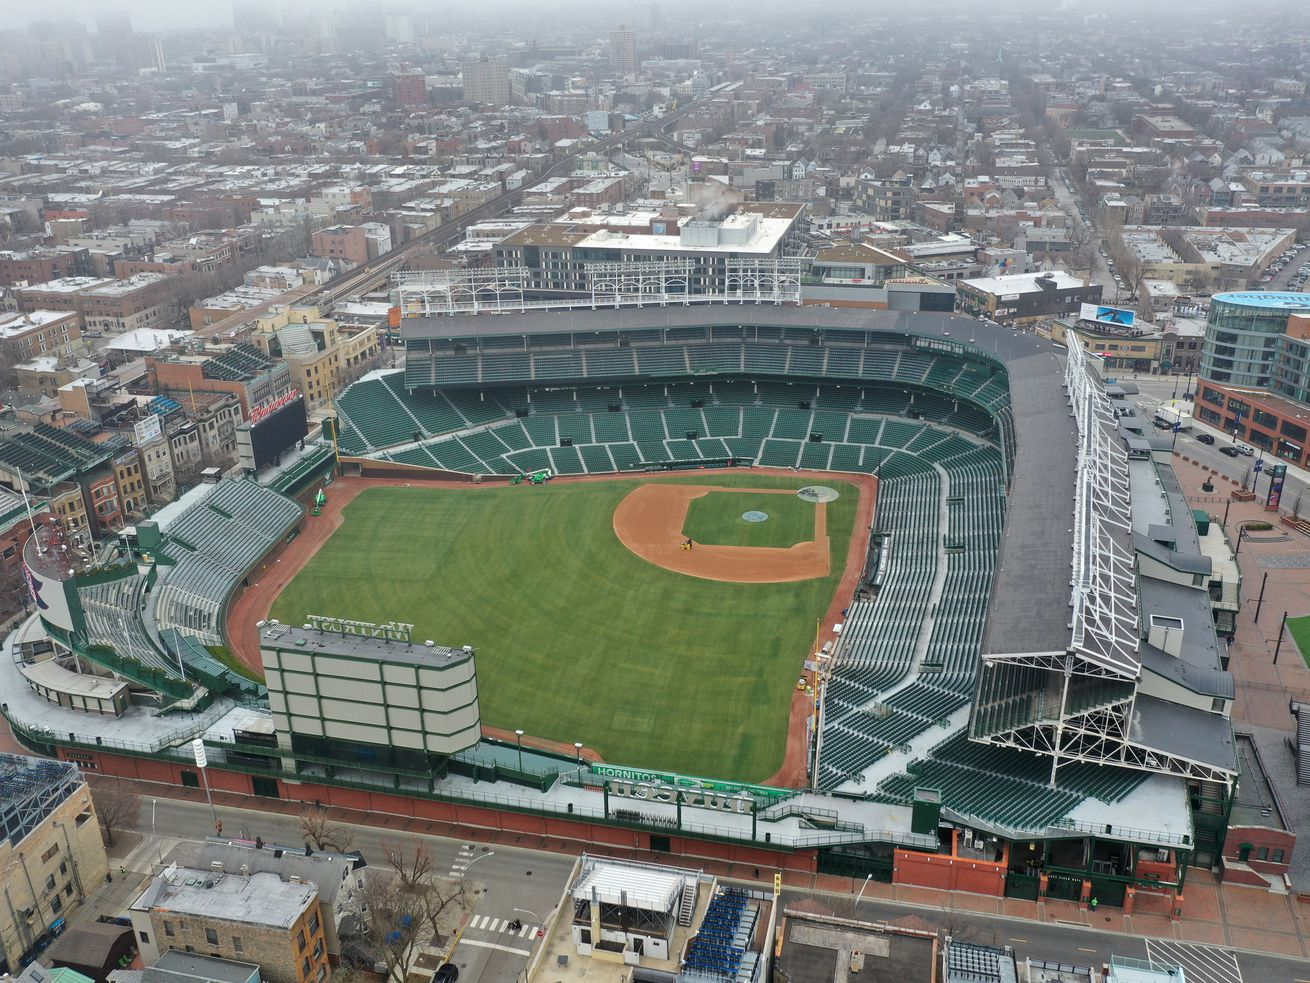 An aerial from a drone shows Wrigley Field, home of the Chicago Cubs.